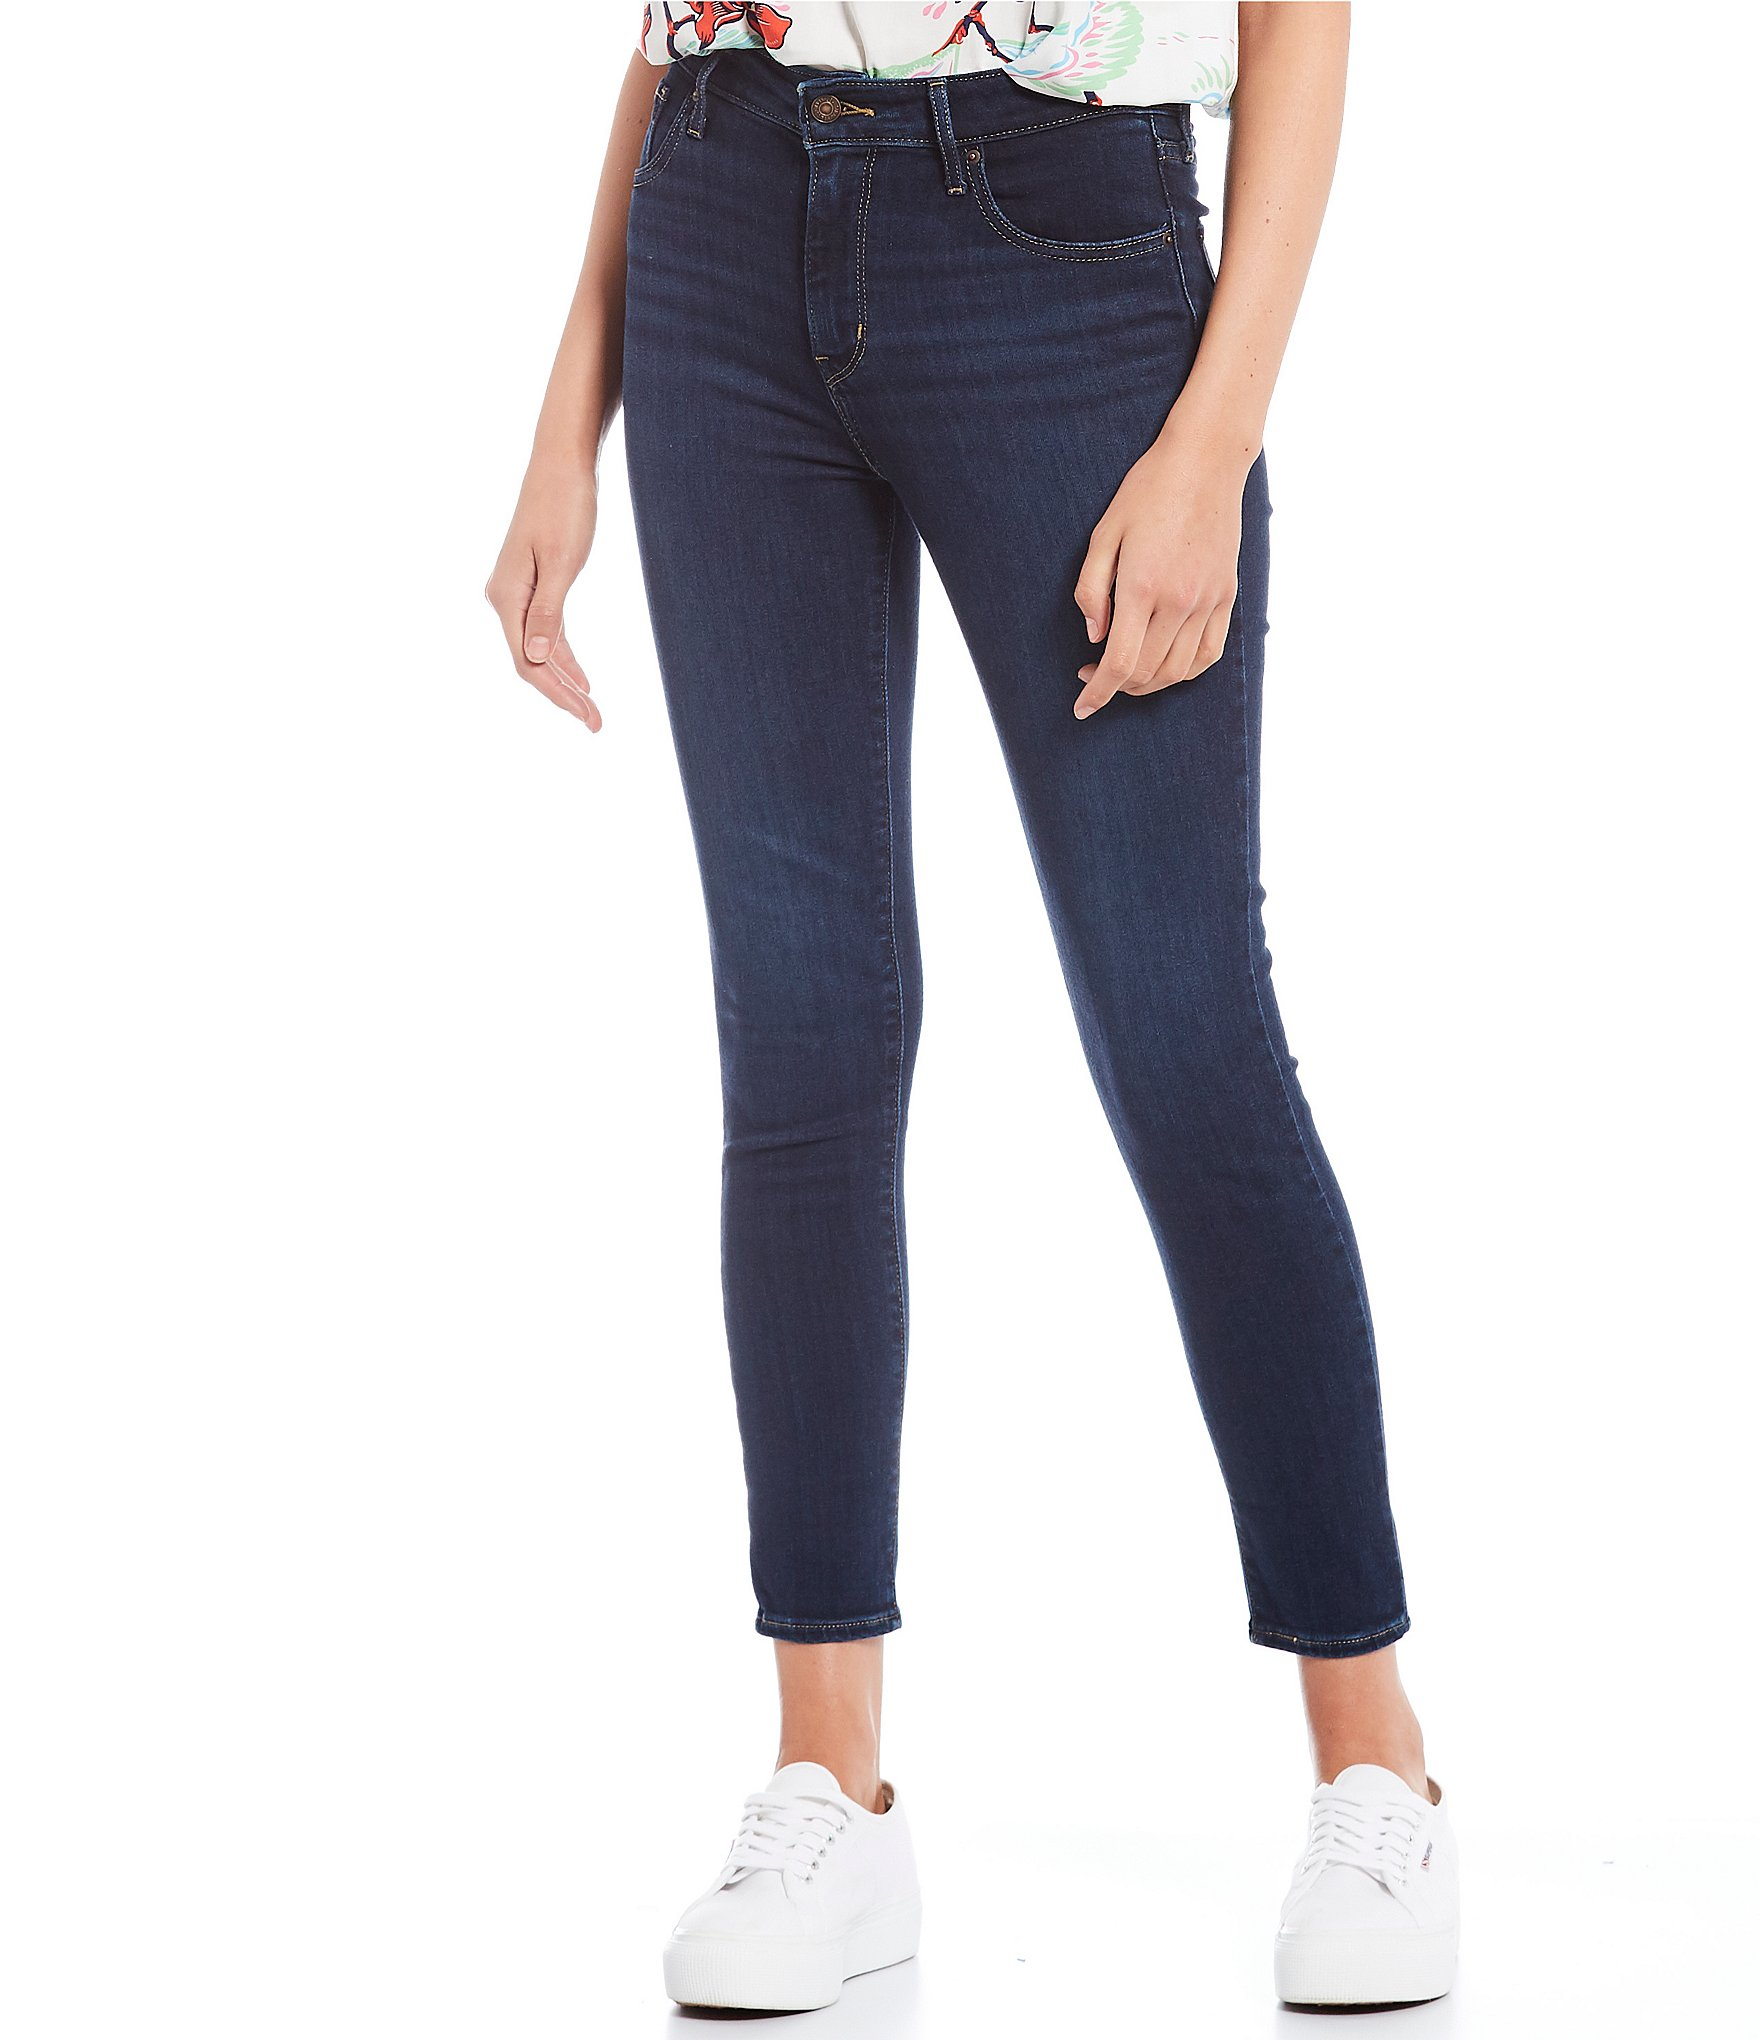 721 High Rise Ankle Skinny Jeans by Levi's